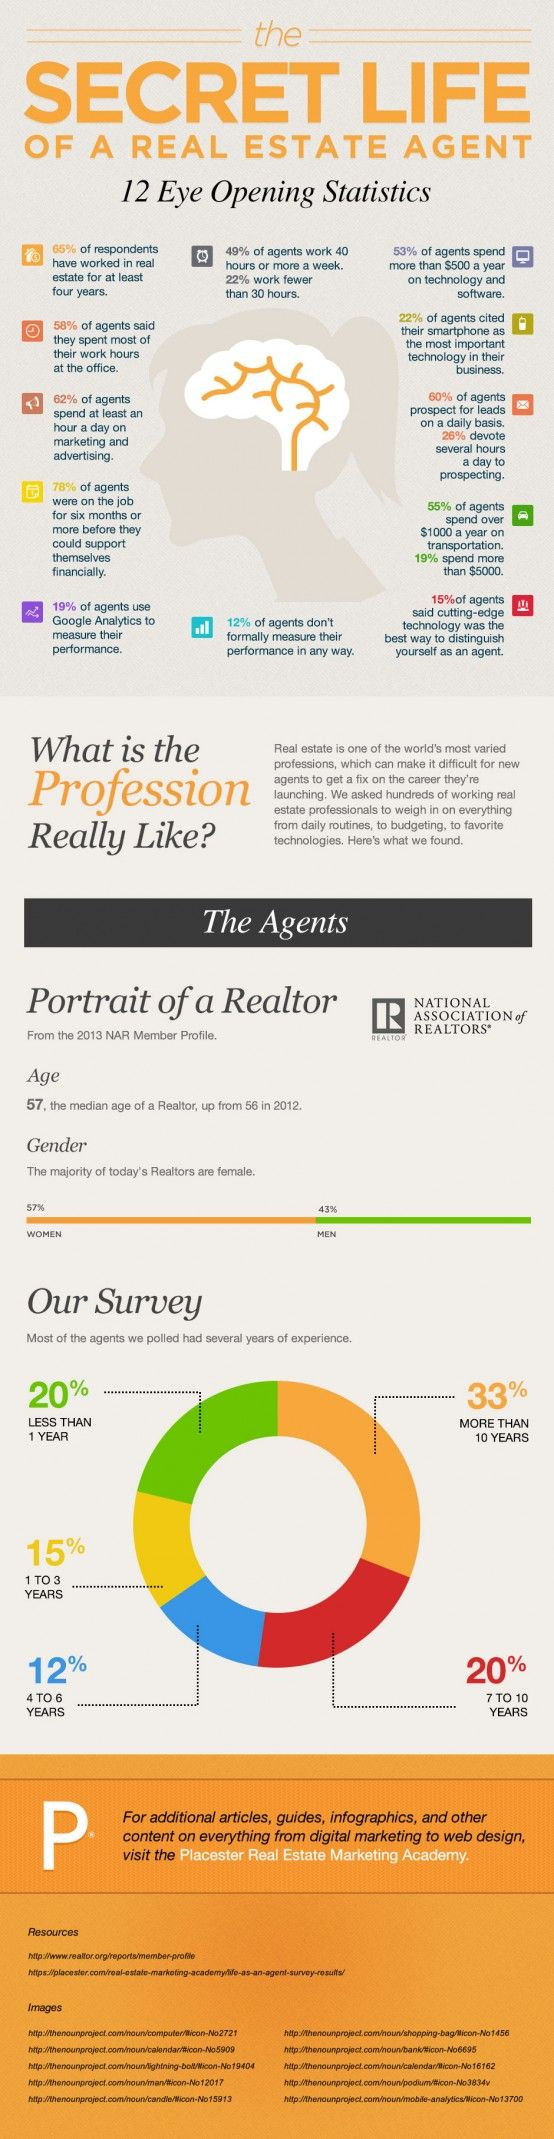 To provide some insight into the daily lives of real estate agents, we've put together this new infographic: The Secret Life of a Real Estate Agent.